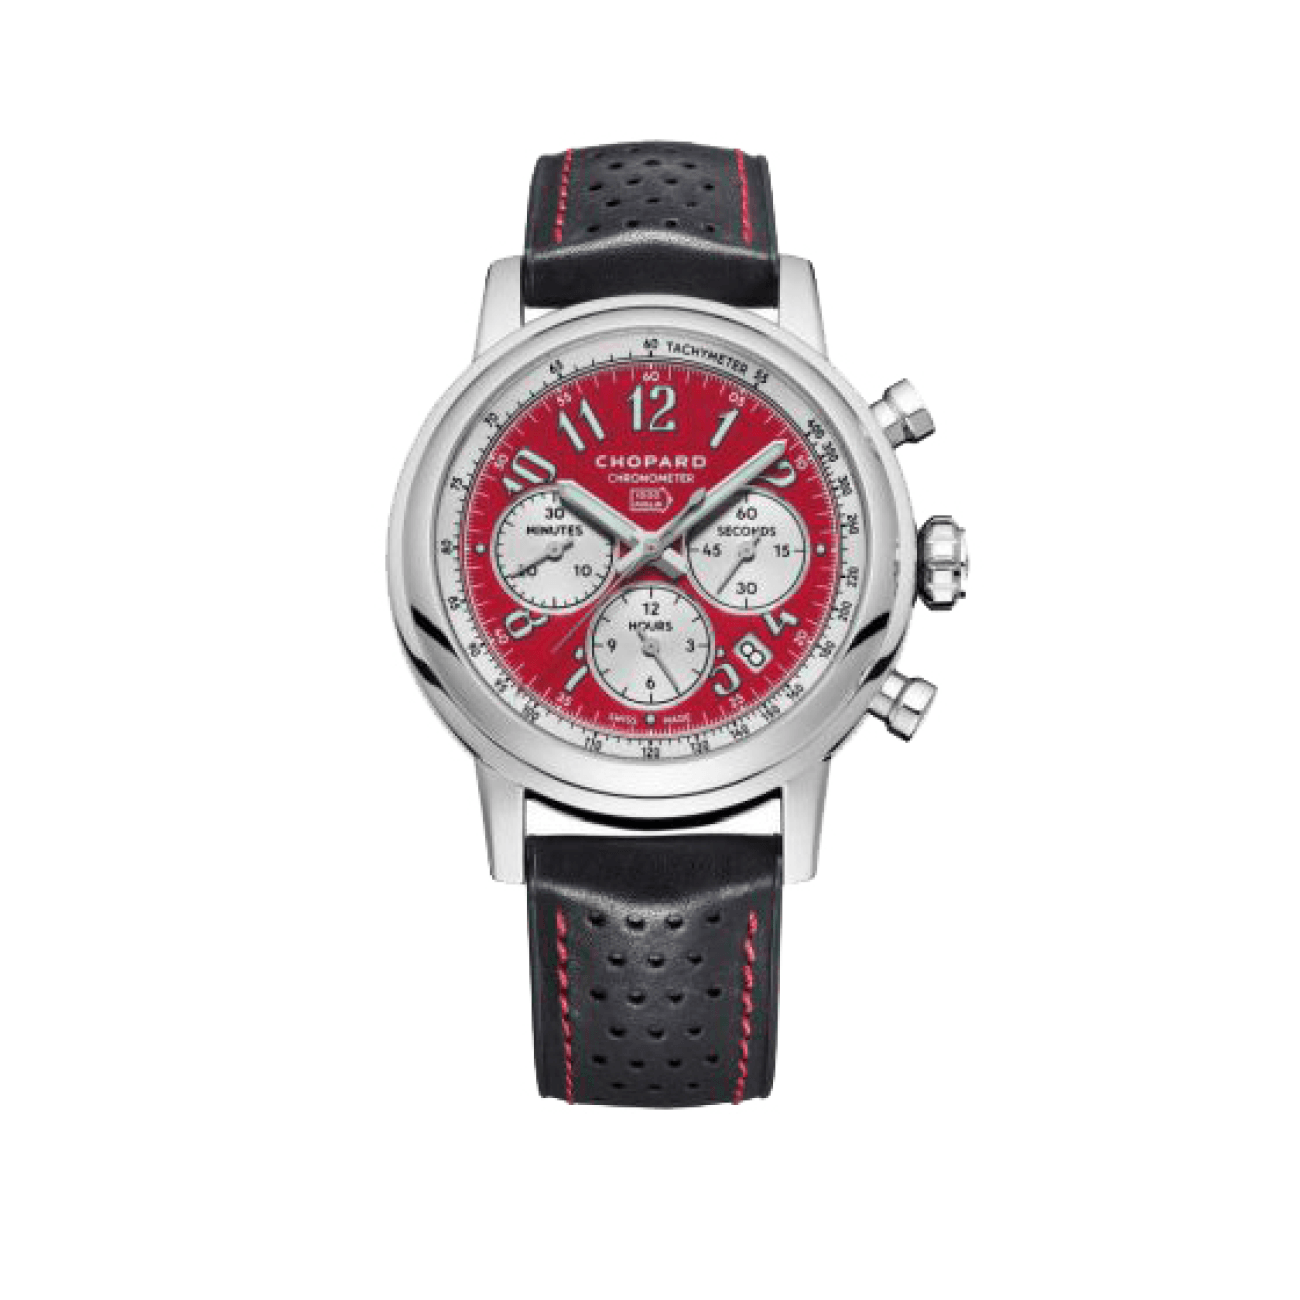 Chopard Watches - MILLE MIGLIA RACING COLORS | Manfredi Jewels